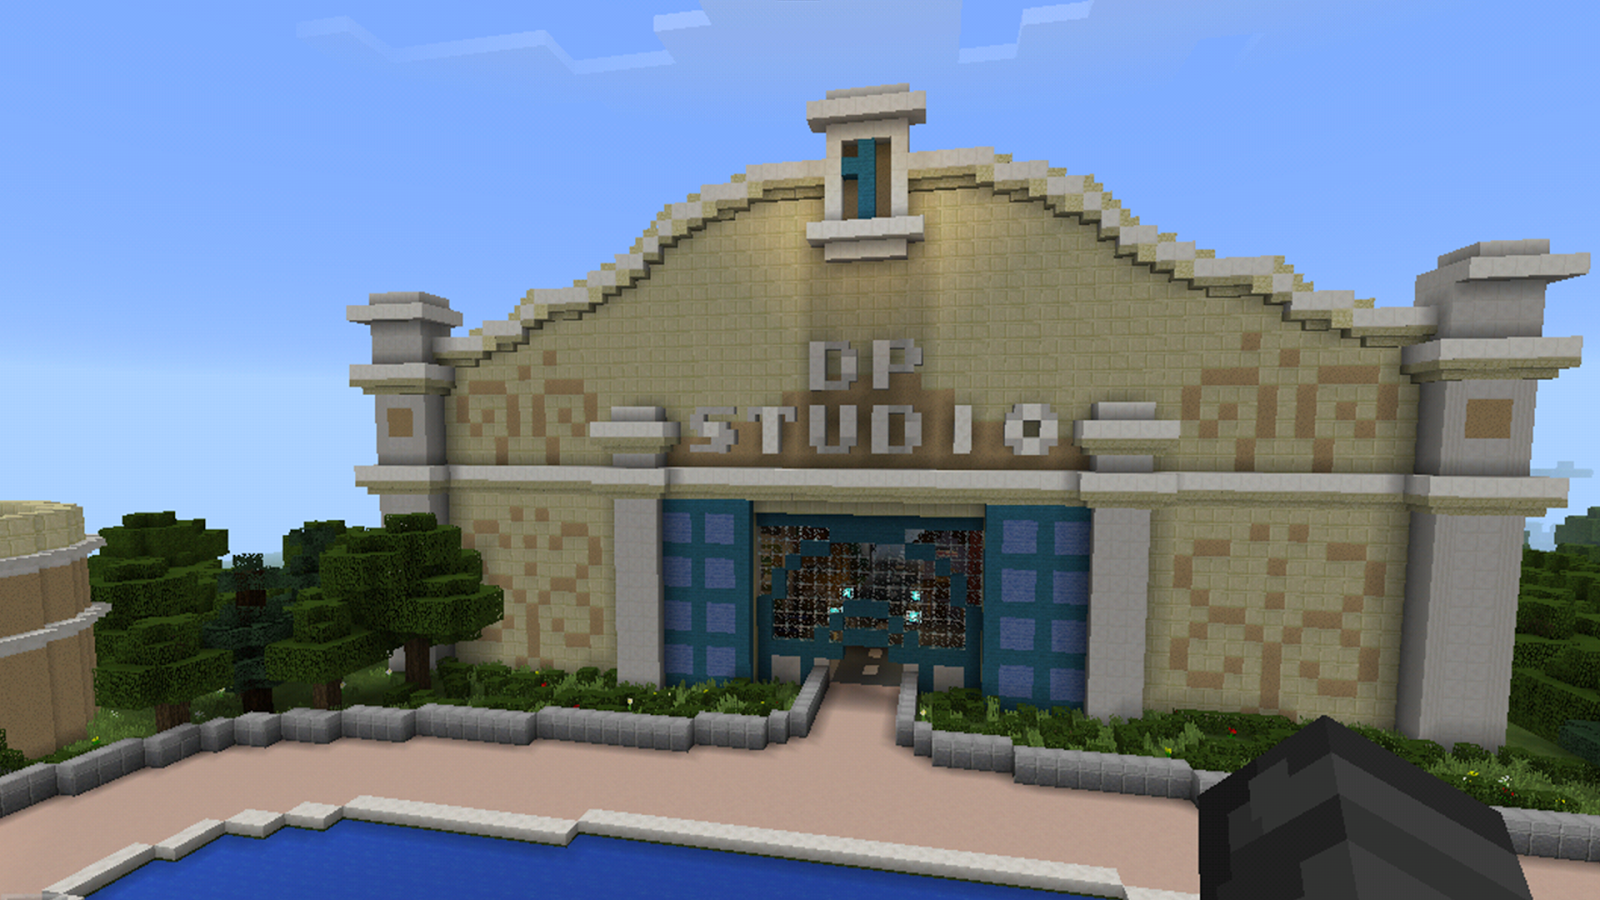 Disneyland Minecraft Map on